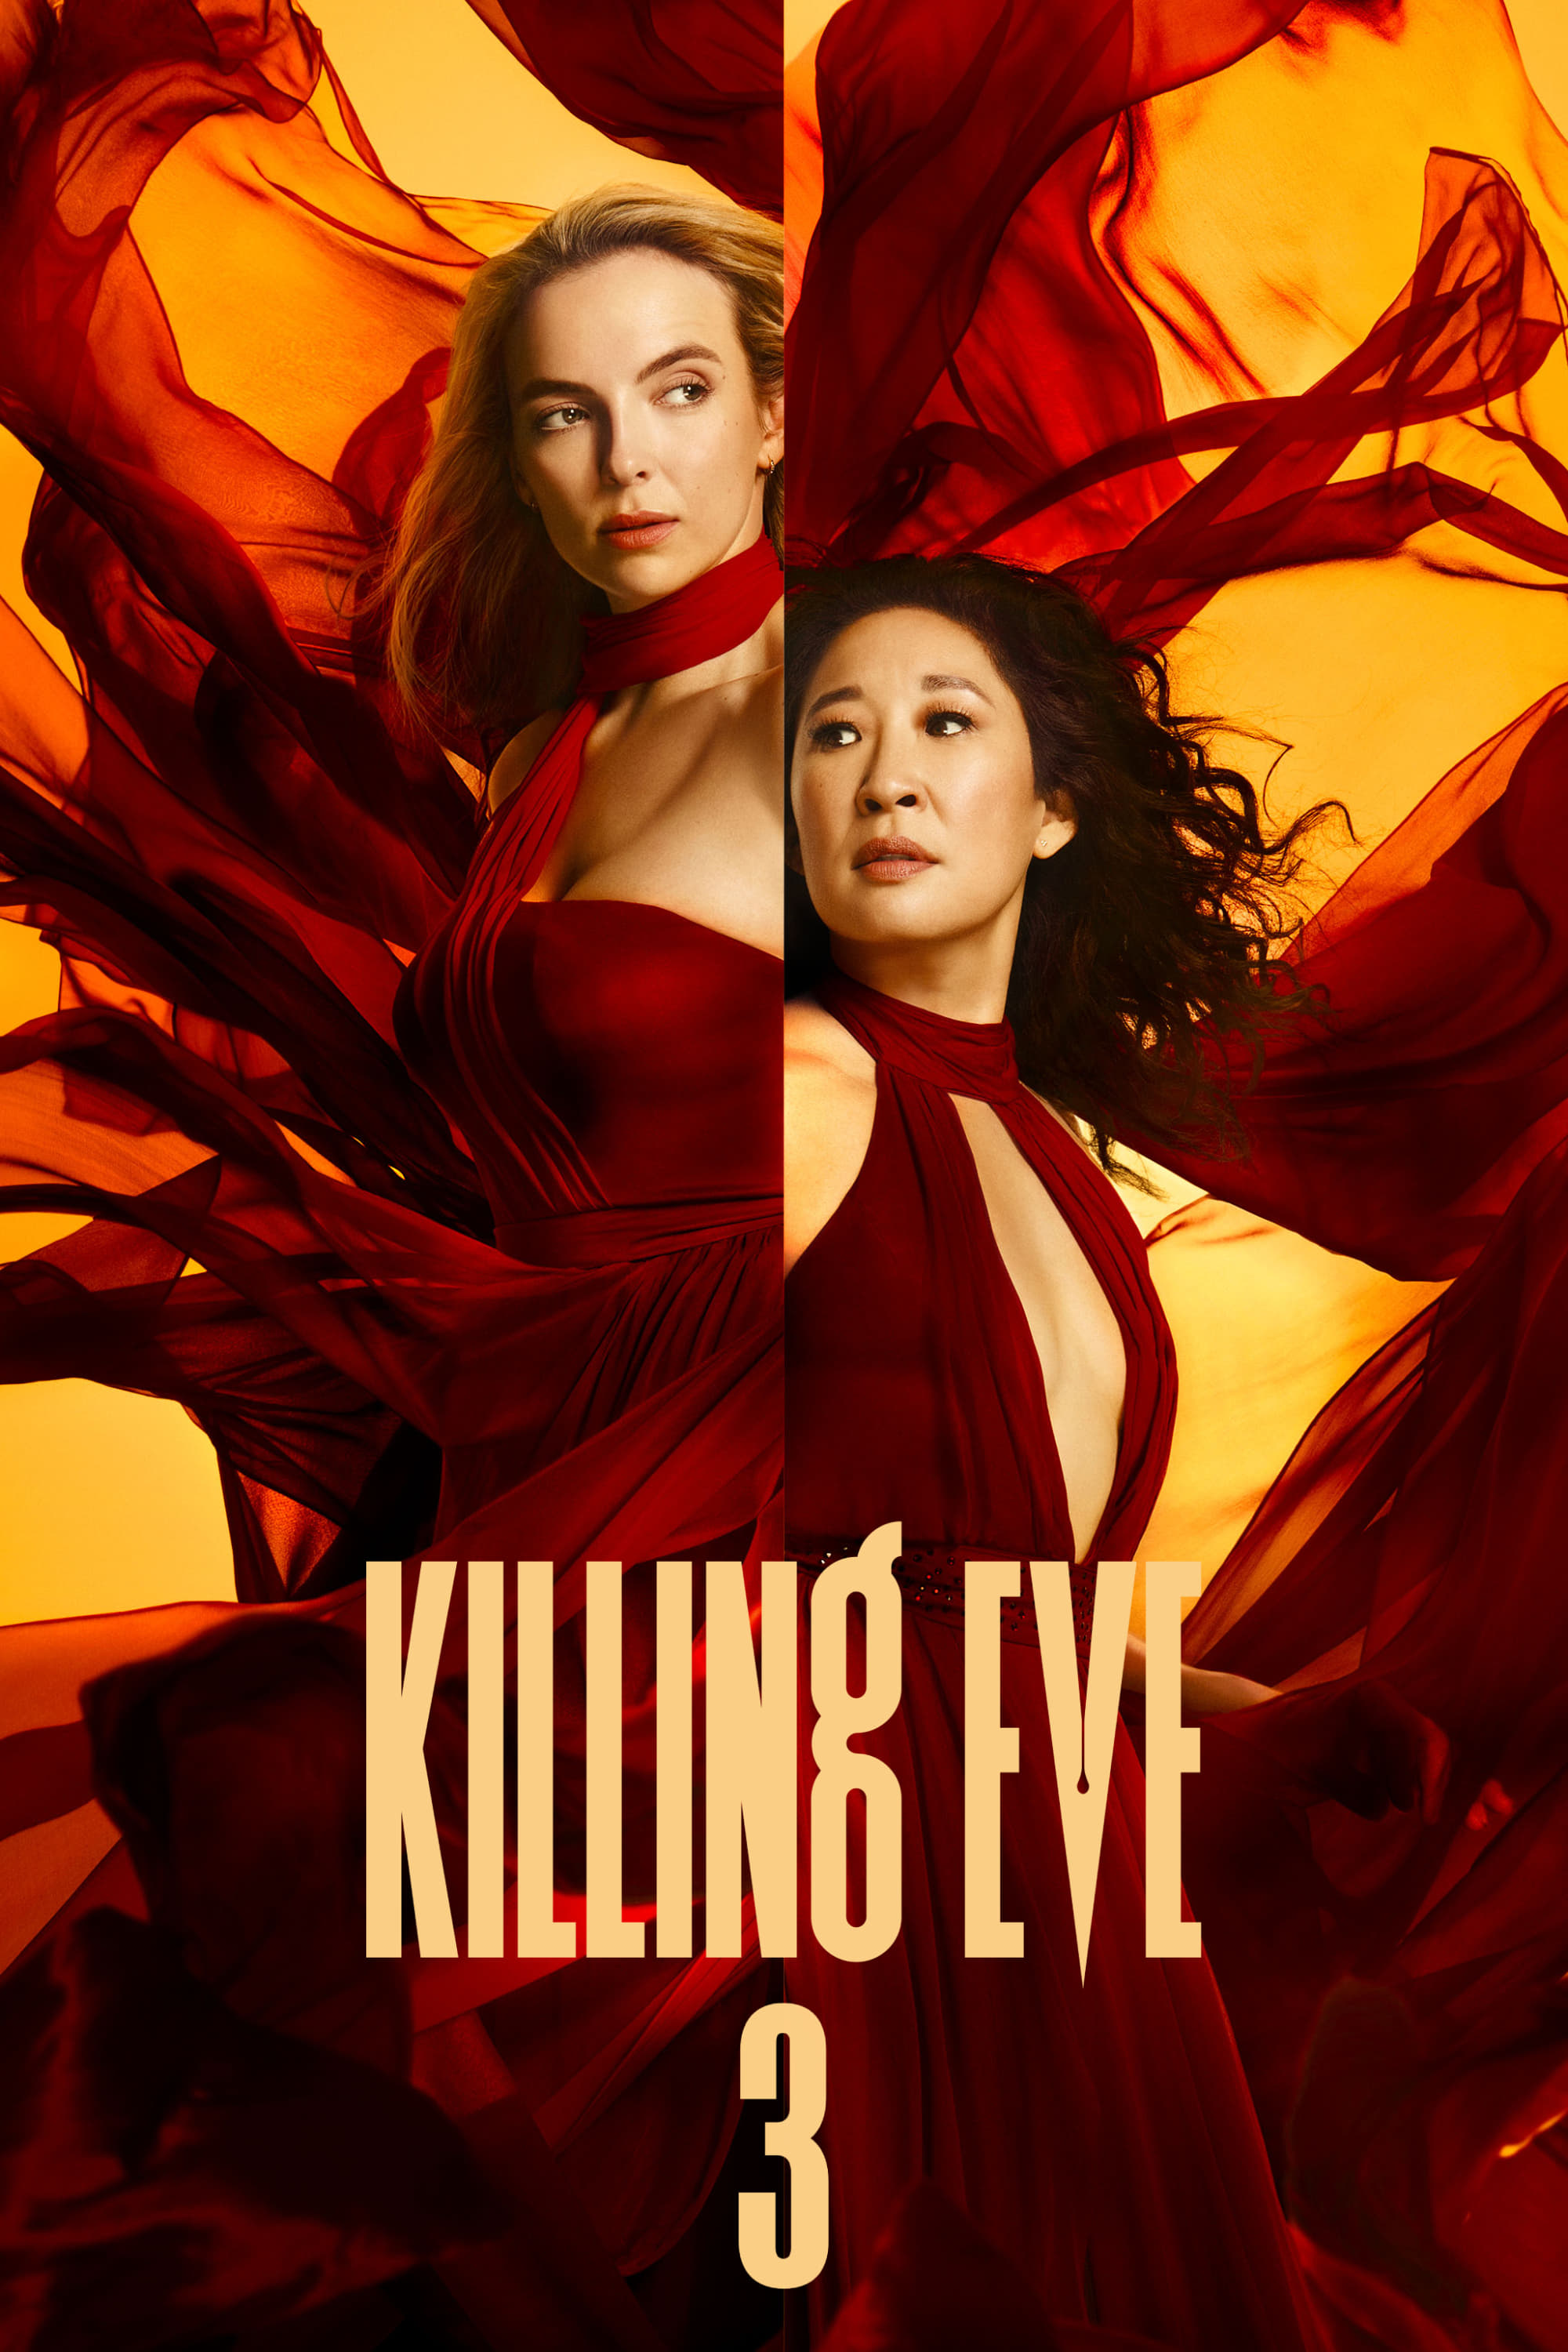 杀死伊芙 第三季 Killing Eve Season 3